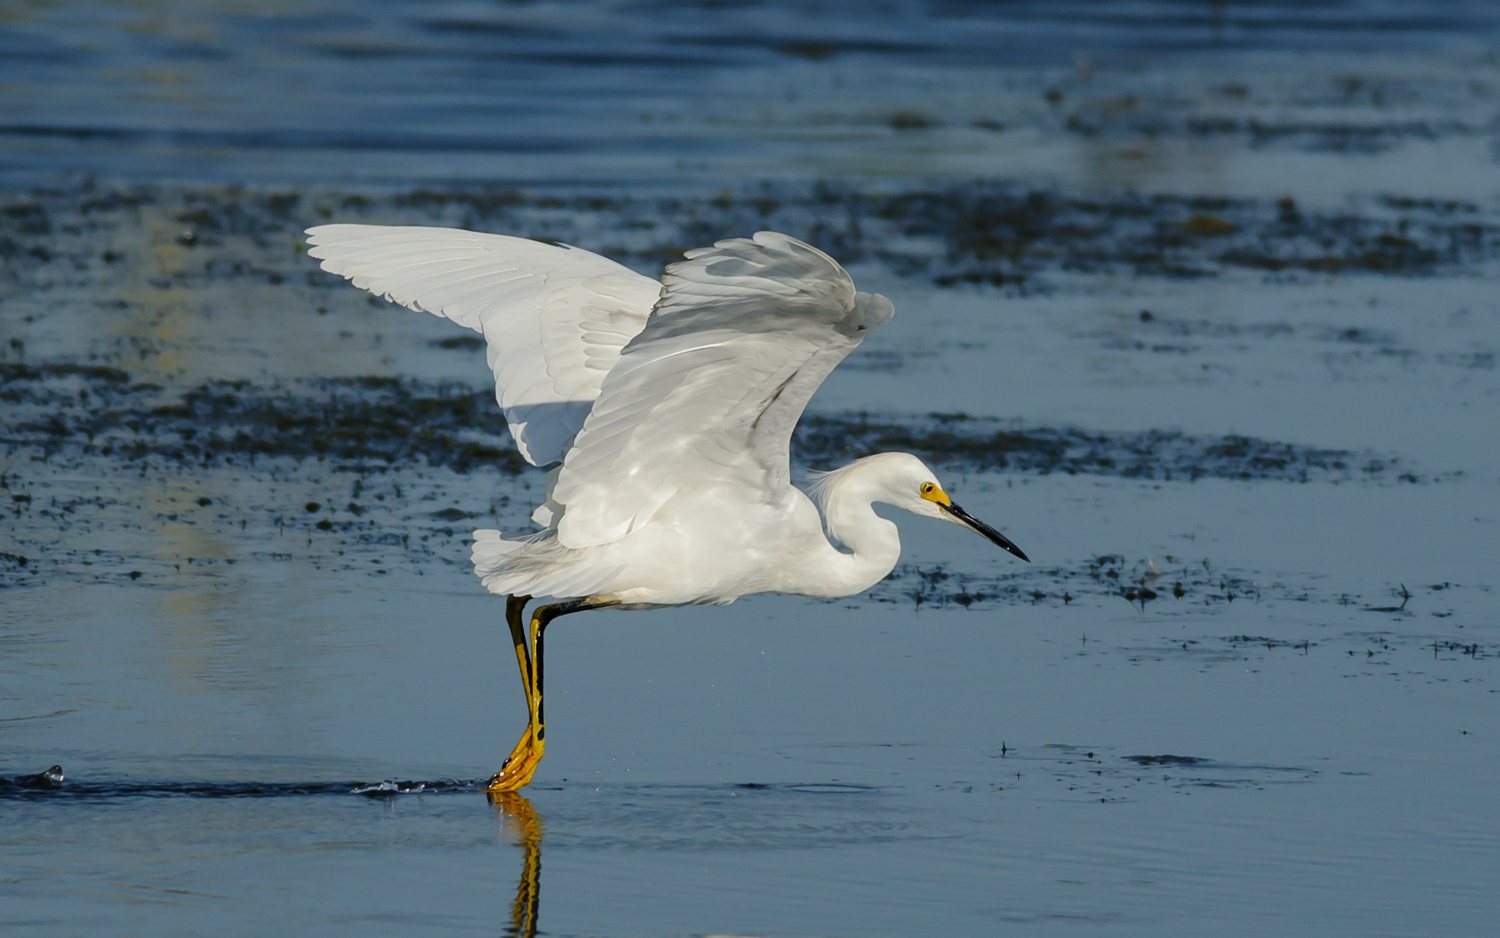 Snowy Egret Foot-dragging, Bayou Sauvage NWR (LA), 2013